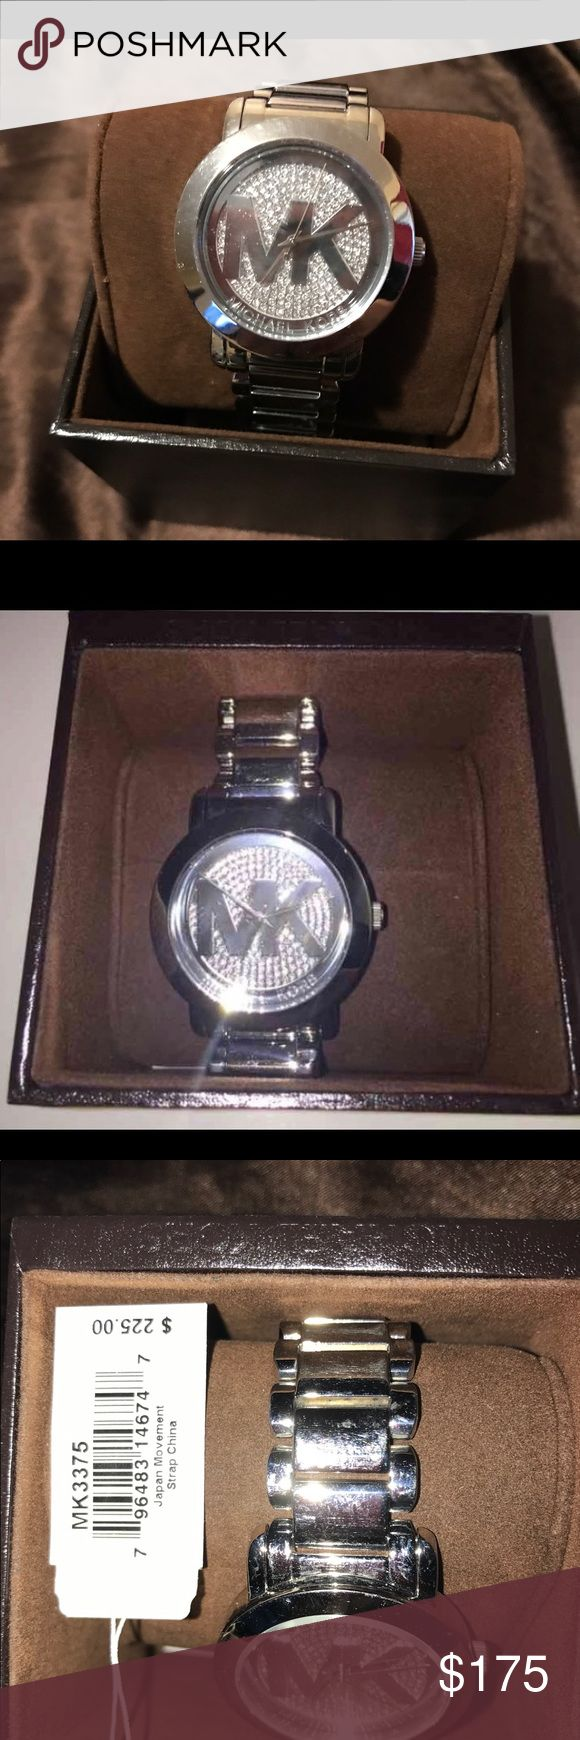 MICHAEL KORS WATCH Has some scratches on the back, none on the face comes with the box, good looking watch Michael Kors Accessories Watches